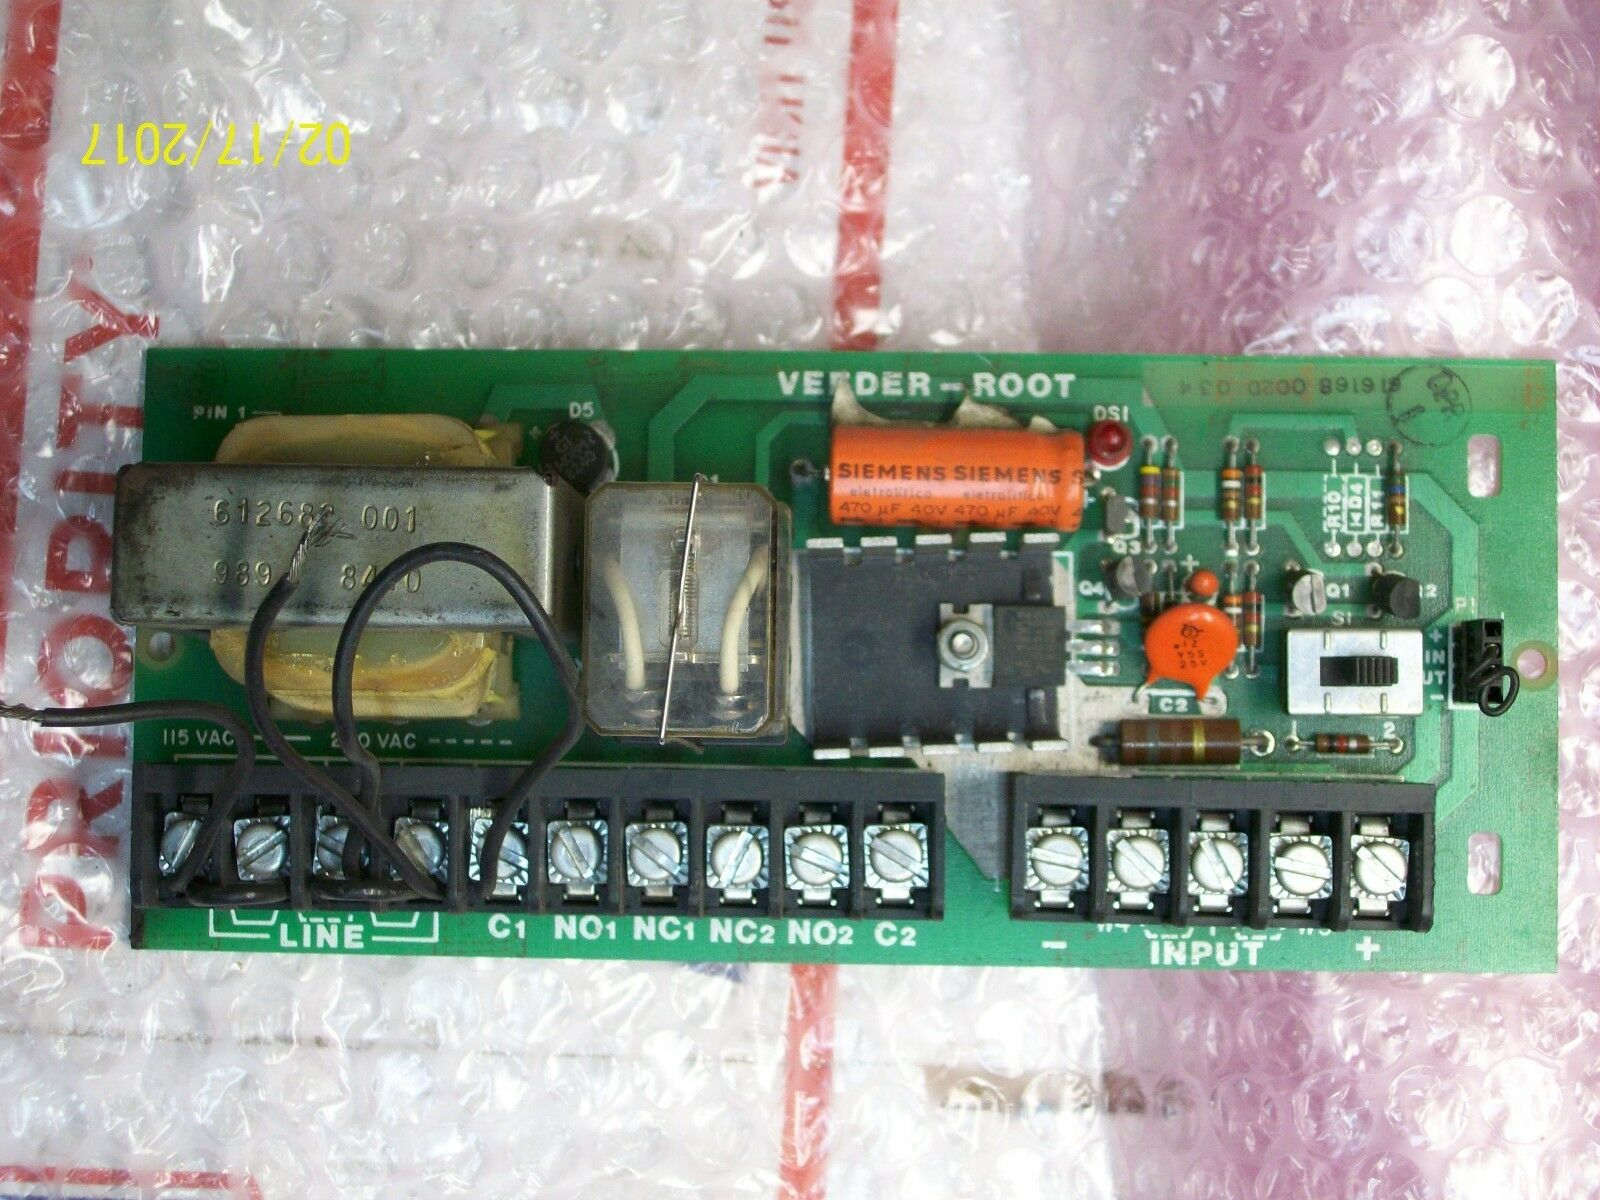 VEEDER ROOT CIRCUIT BOARD 612668-001